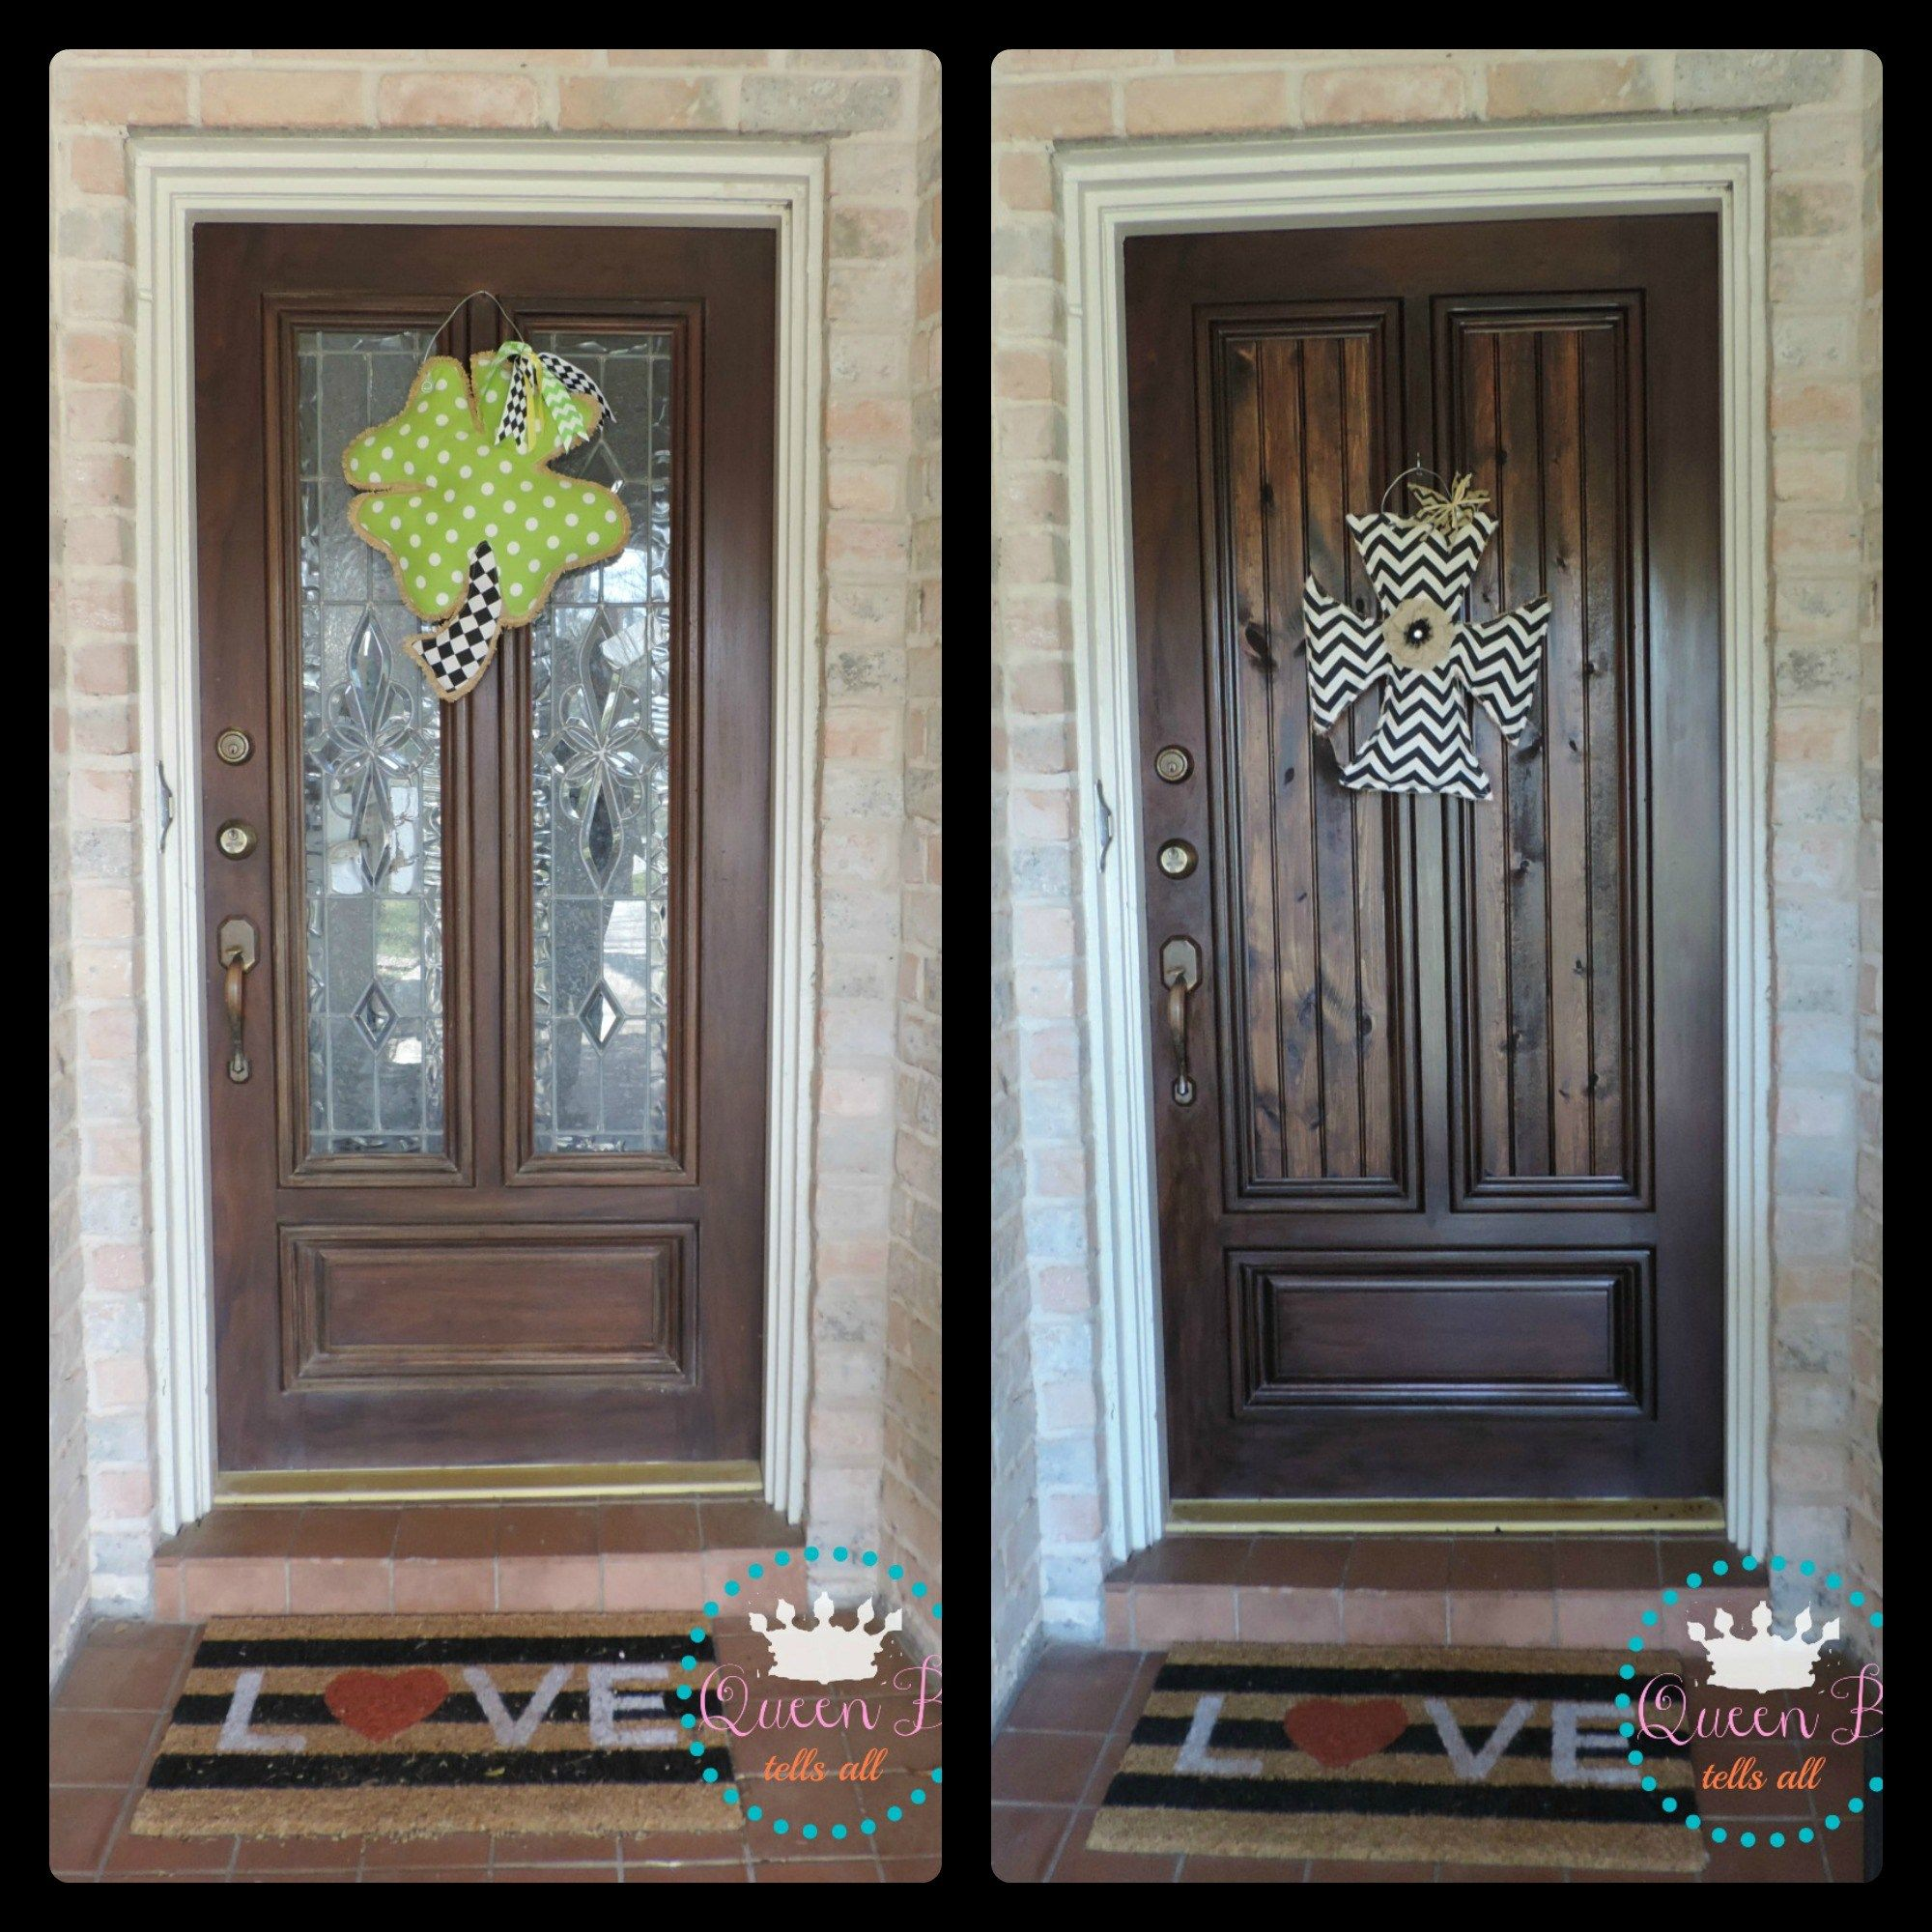 Great How To Replace Glass Door Panels With Wood. Super Easy And Inexpensive!